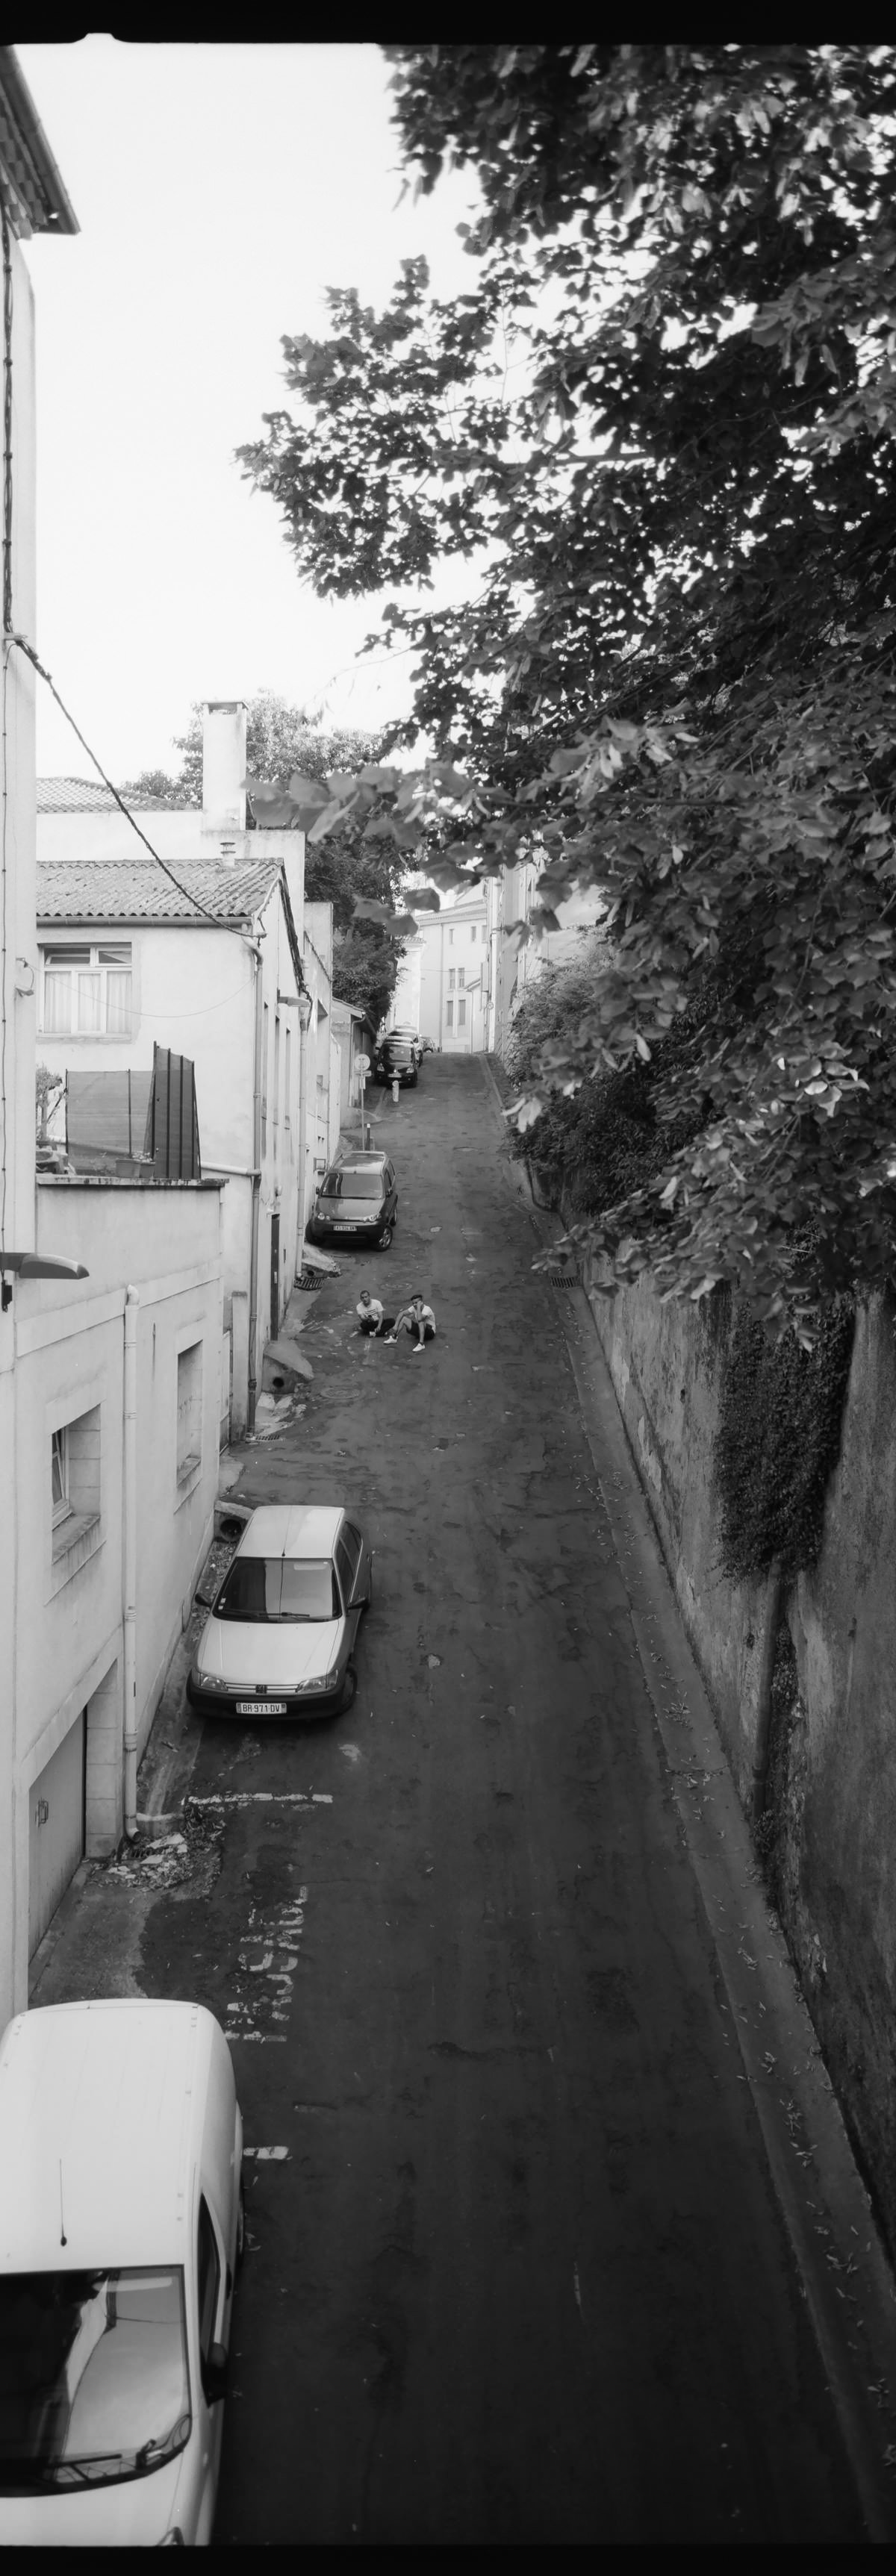 Southern France Streets france street photography on hasselbald xpan 45mm on kodak trix 400